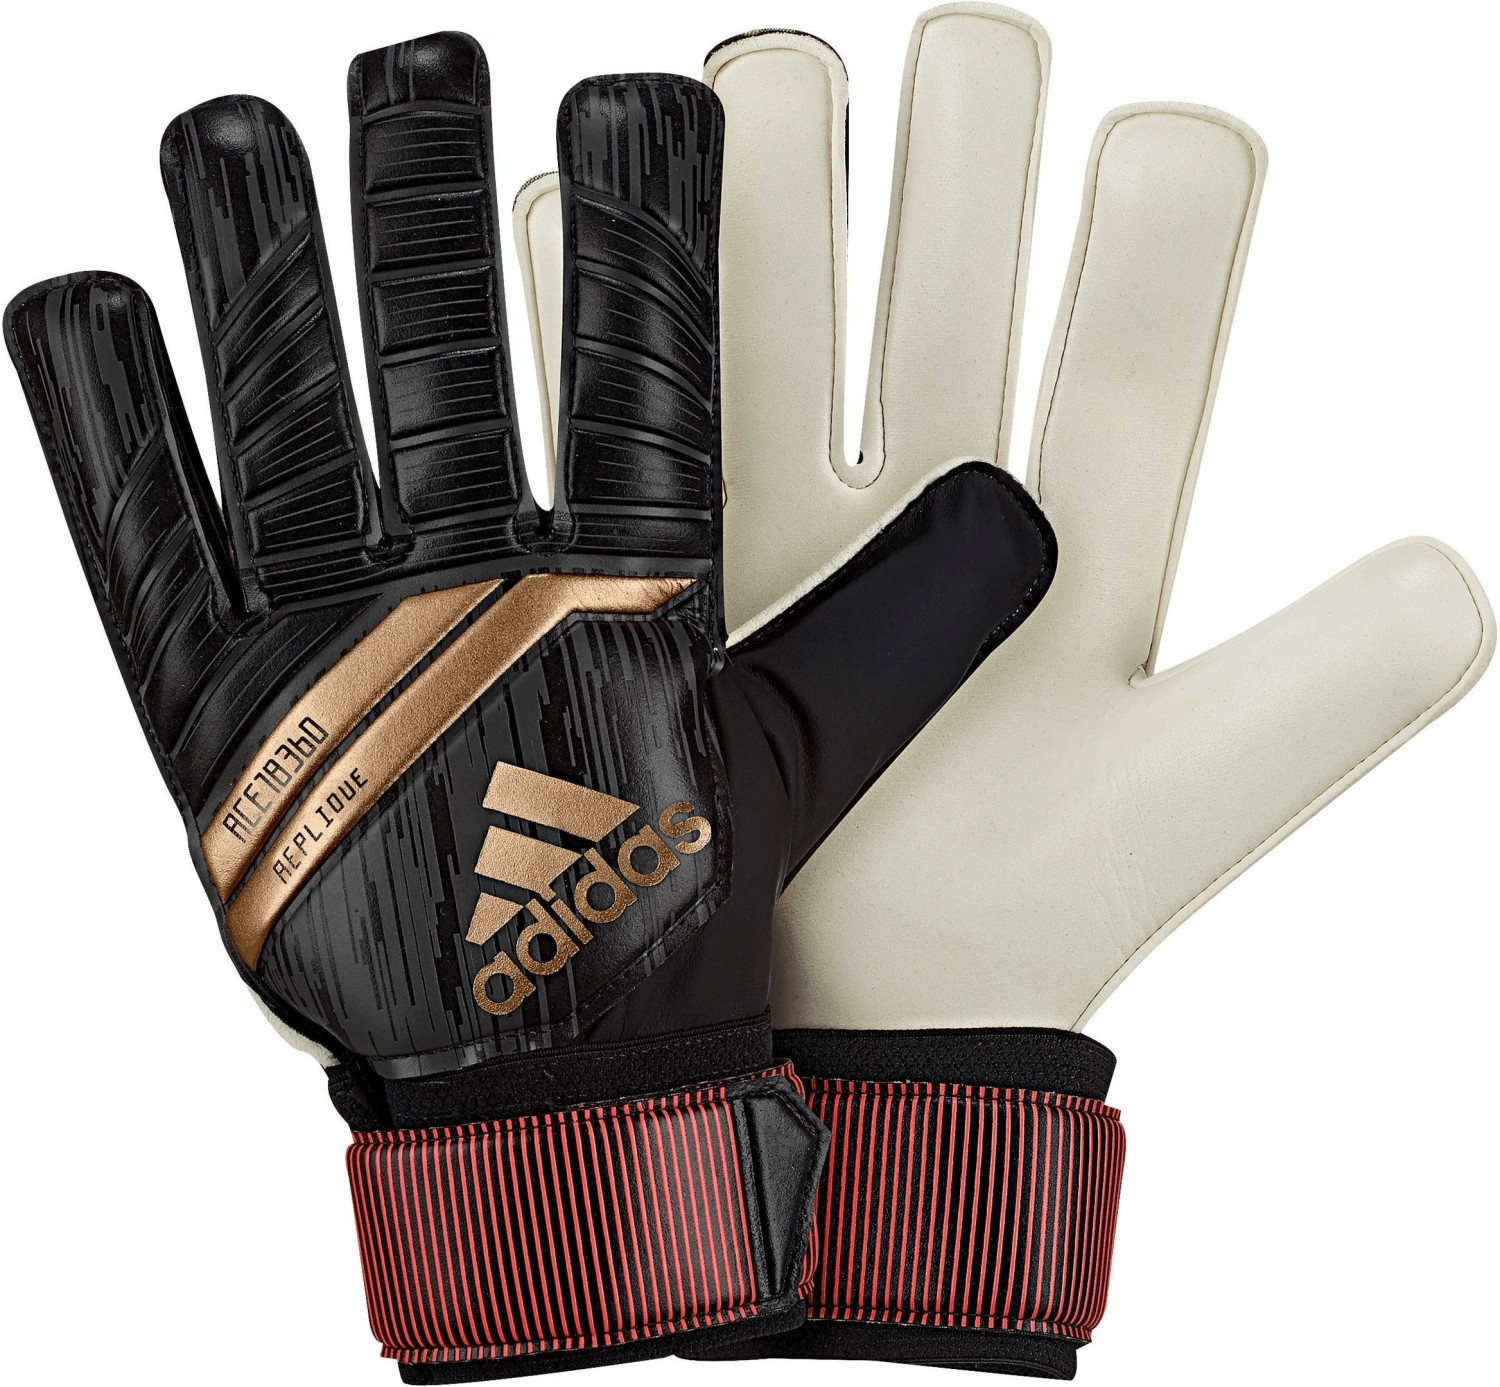 Adidas Predator Replique black/solar red/copper gold